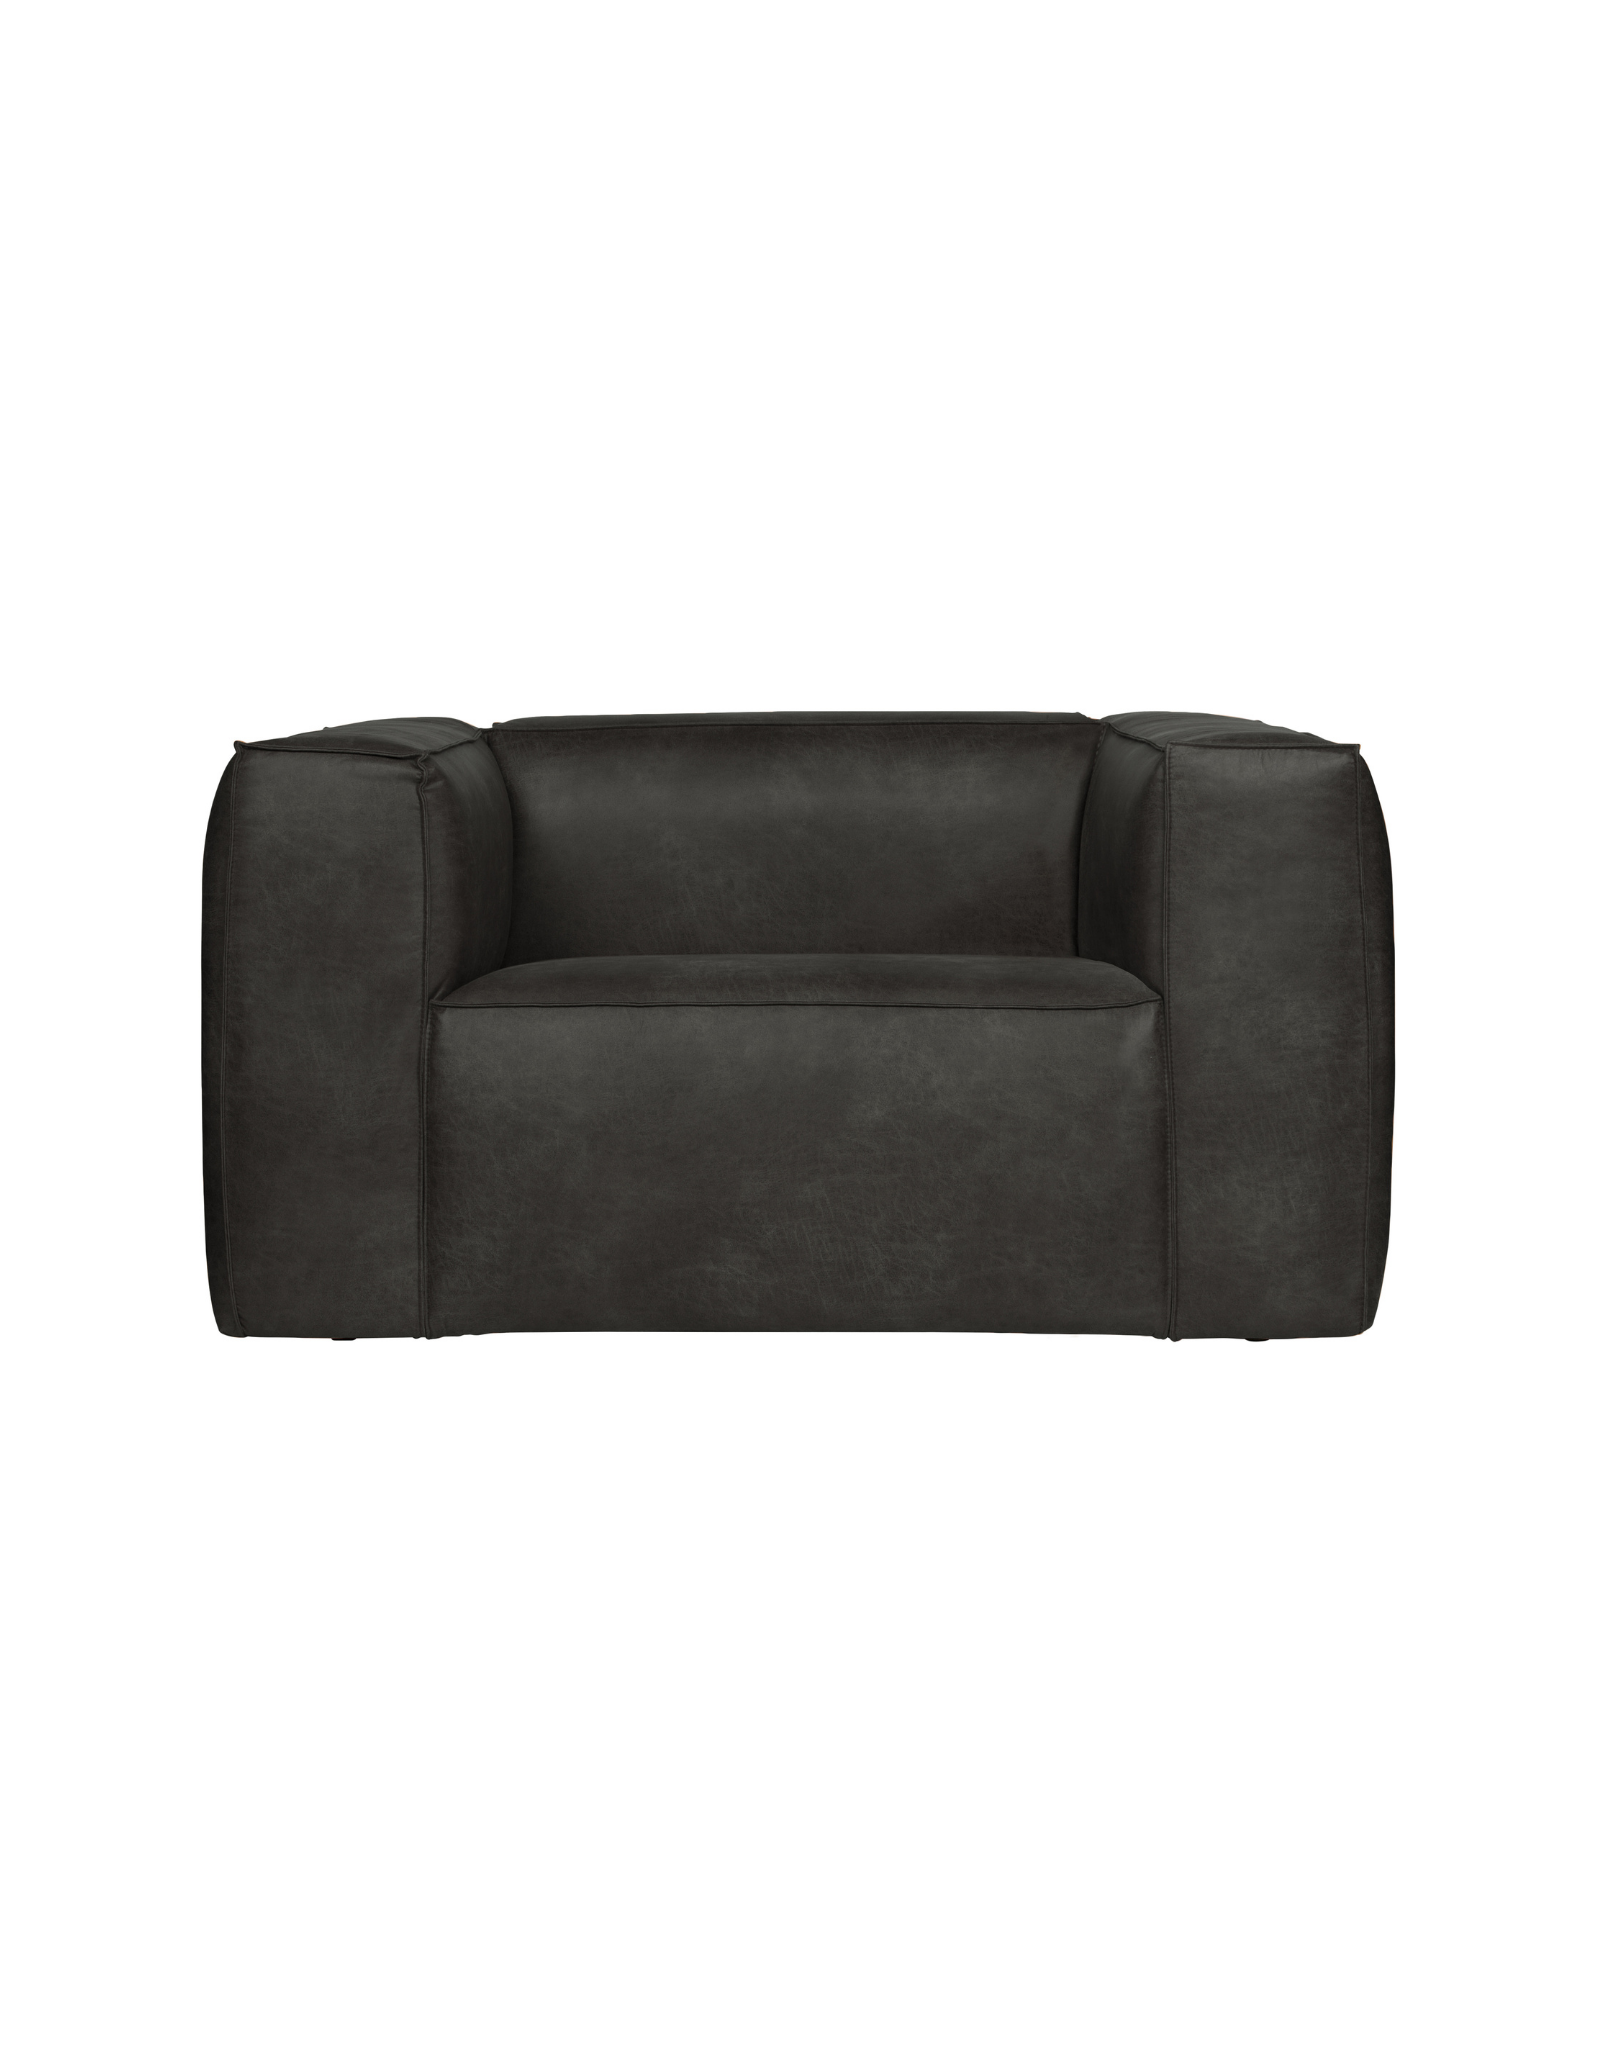 Bean Fauteuil - Recycled Leder